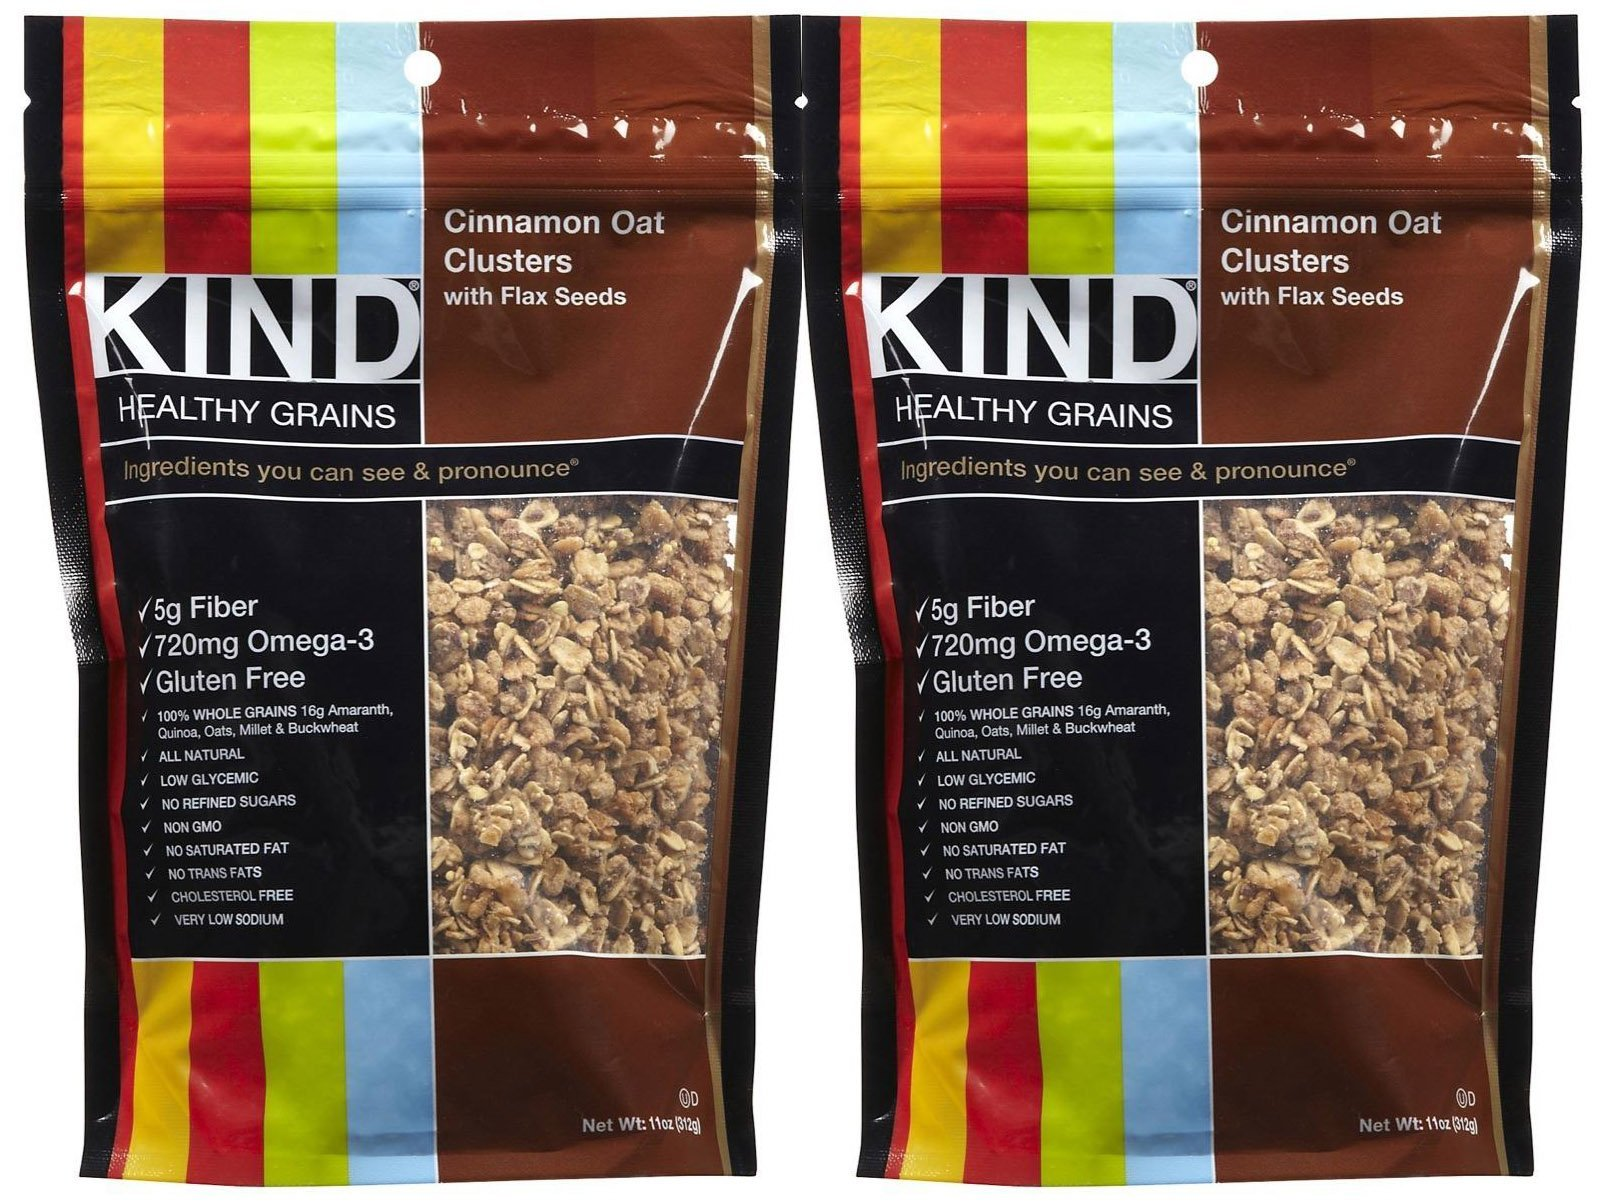 KIND Healthy Grains Clusters - Cinnamon Oat with Flax Seeds - 11 oz - 2 Pack